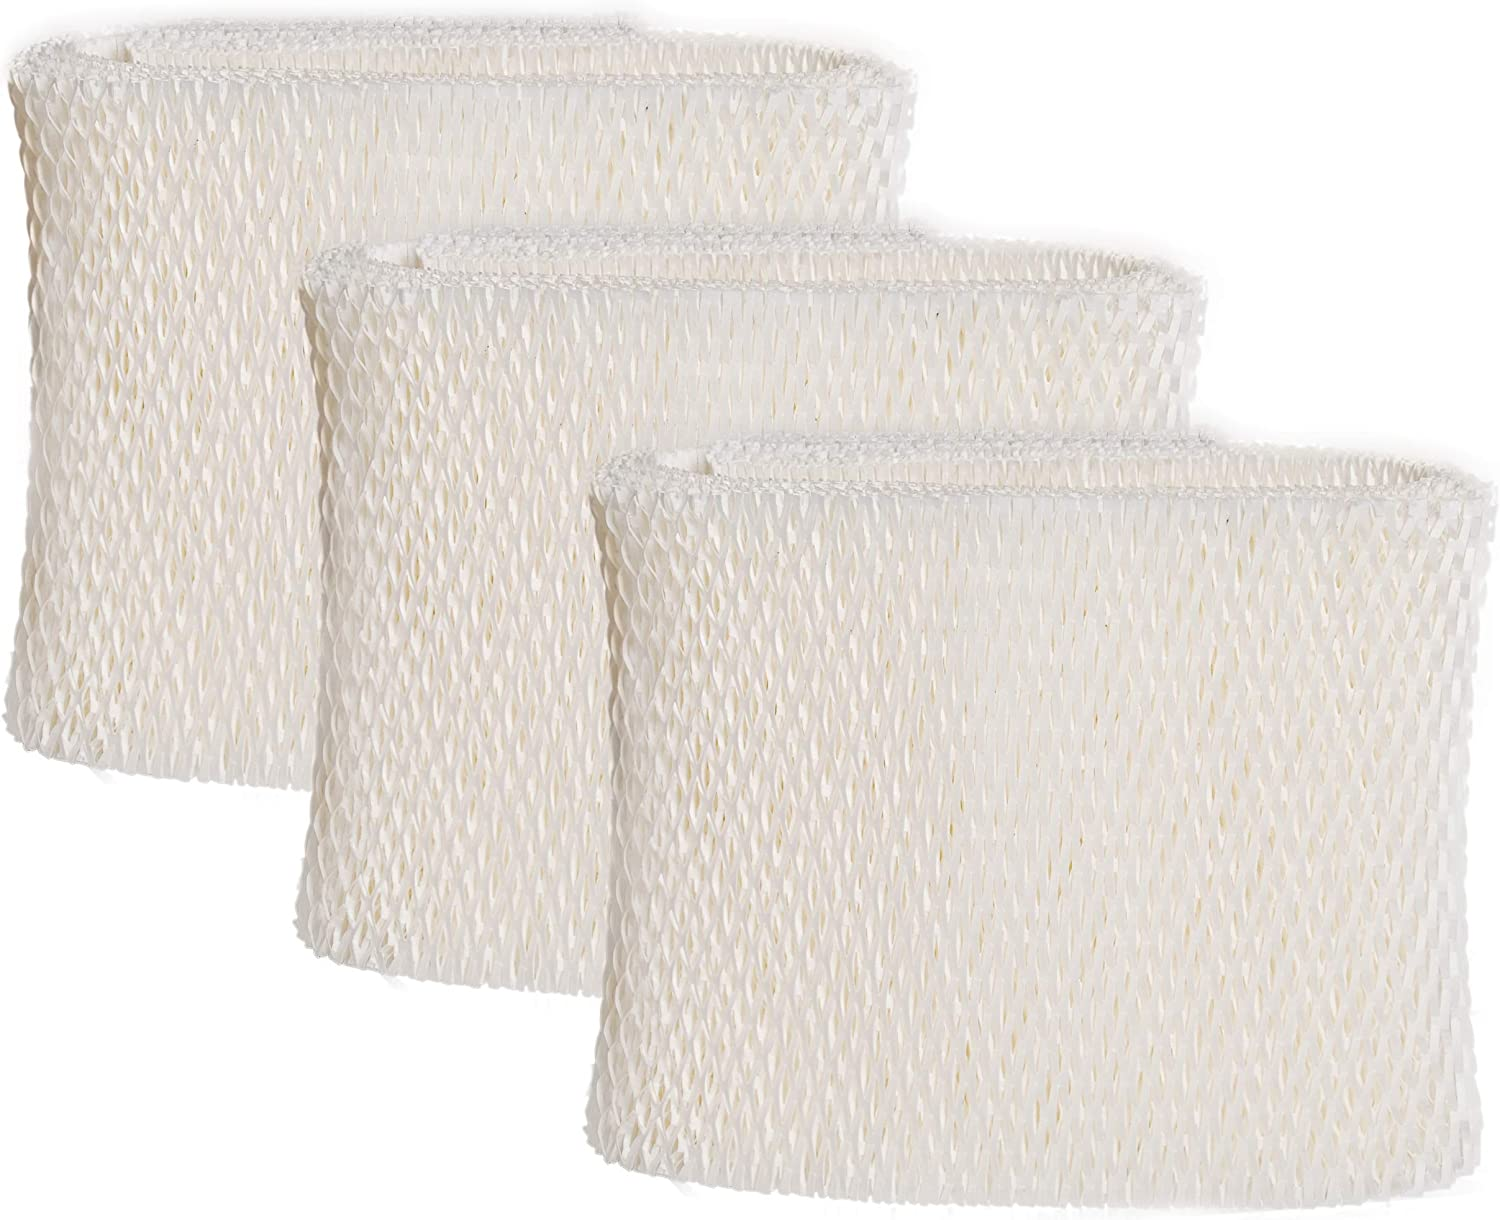 HIFROM Humidifier Wick Filter Replacement MAF-2 Essick A High order Air Super Special SALE held for